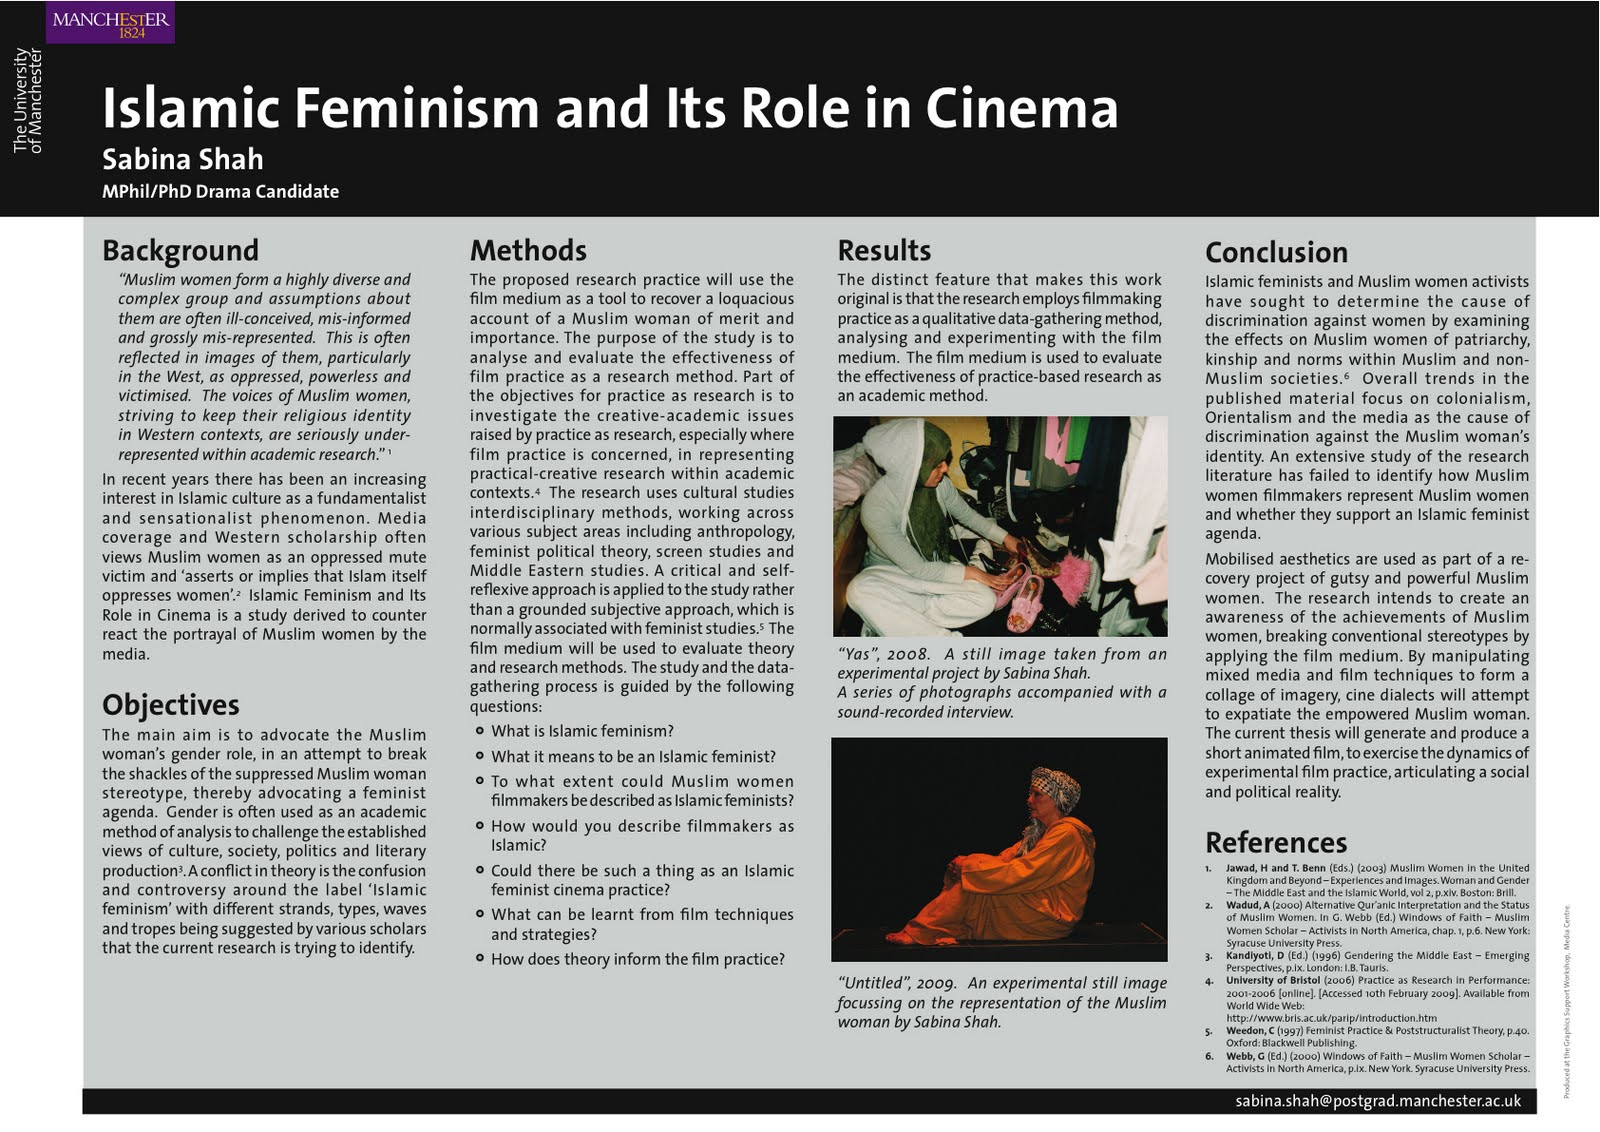 Sabina Shah - Islamic Feminism and Its Role in Cinema: Academic Poster